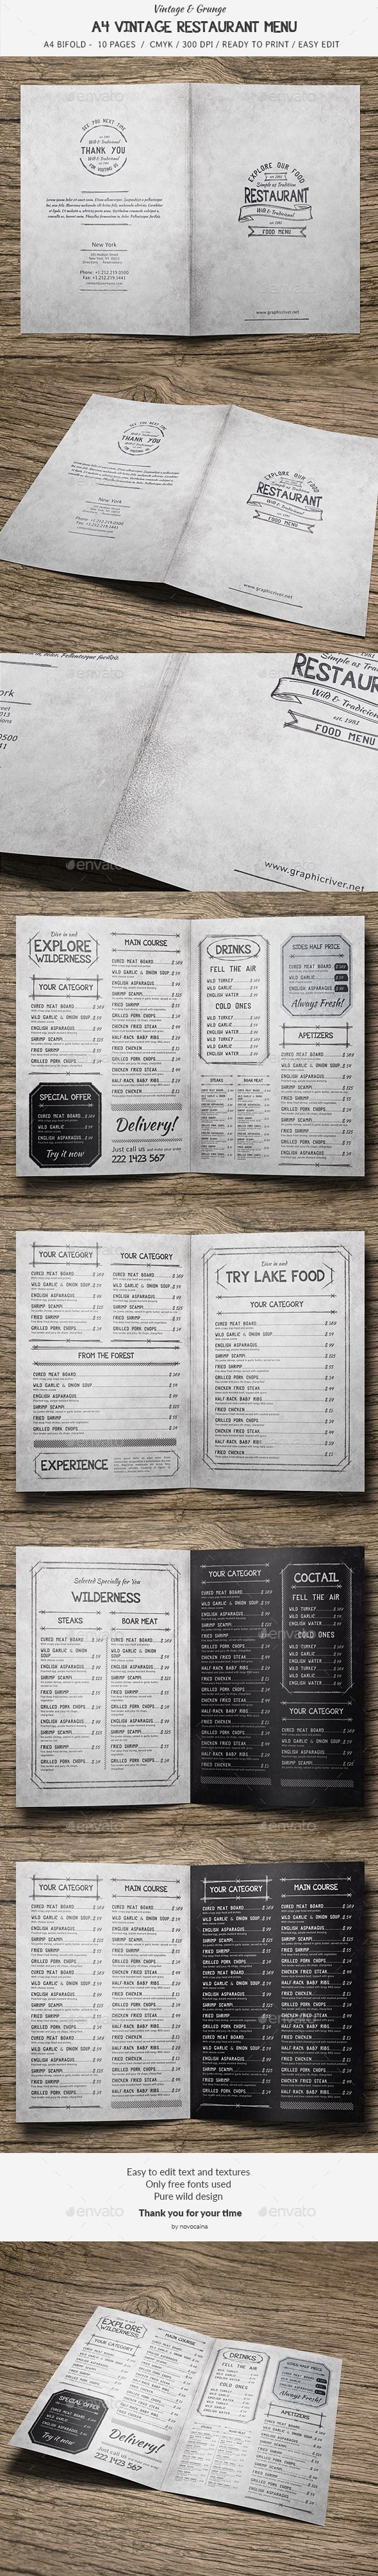 A4 BiFold Vintage Menu  10 Pages — Photoshop PSD #poster #restaurant • Available here → https://graphicriver.net/item/a4-bifold-vintage-menu-10-pages/15585650?ref=pxcr